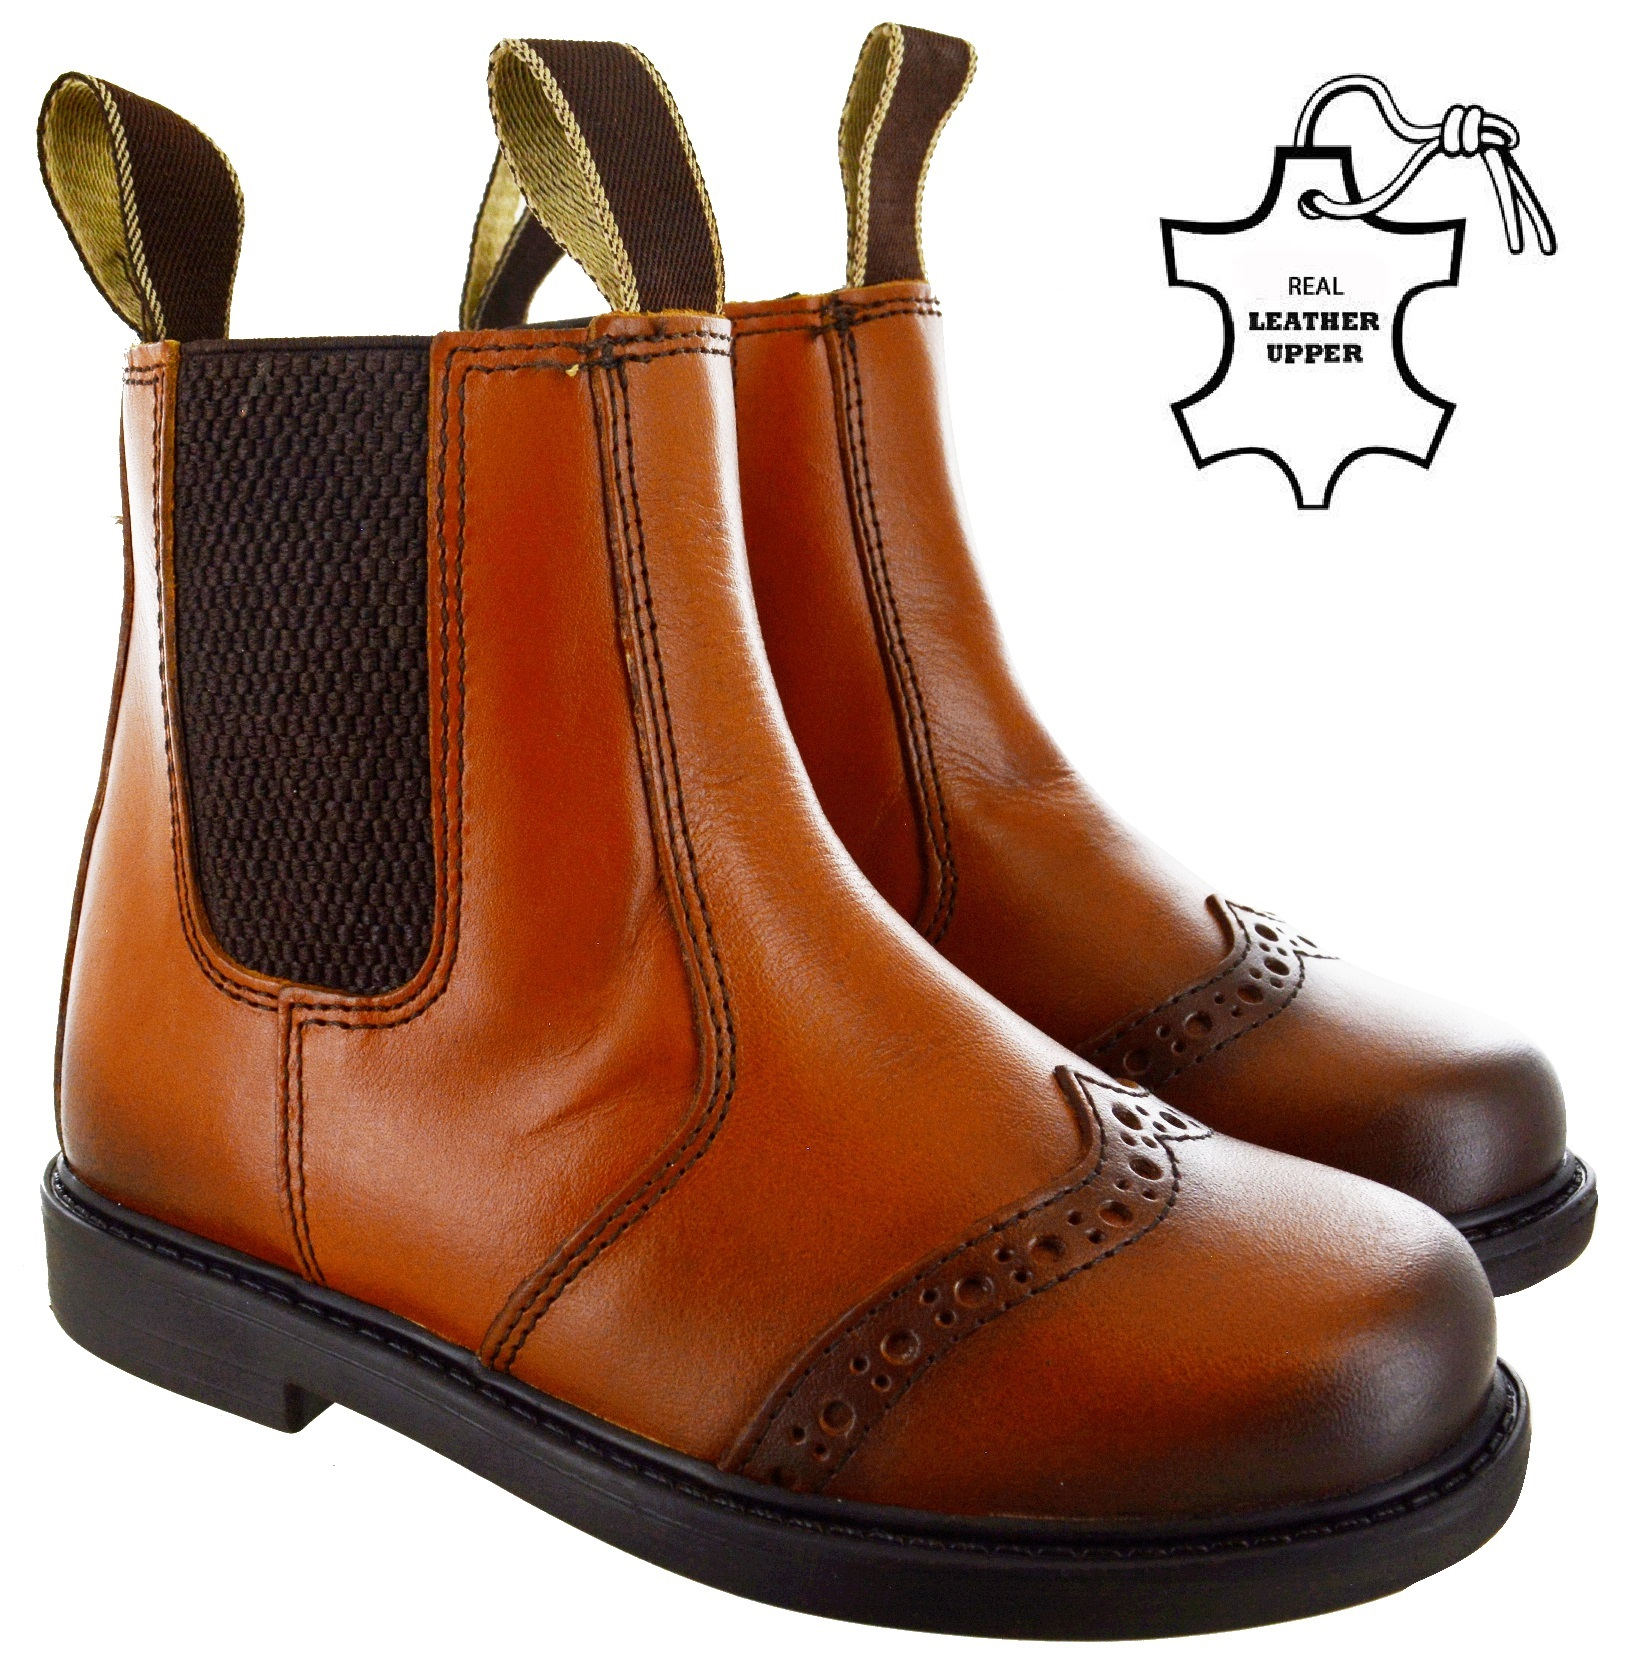 BOYS KIDS LEATHER CHELSEA DEALER ANKLE BOOTS PULL ON CHILDRENS BROWN SHOES SIZE